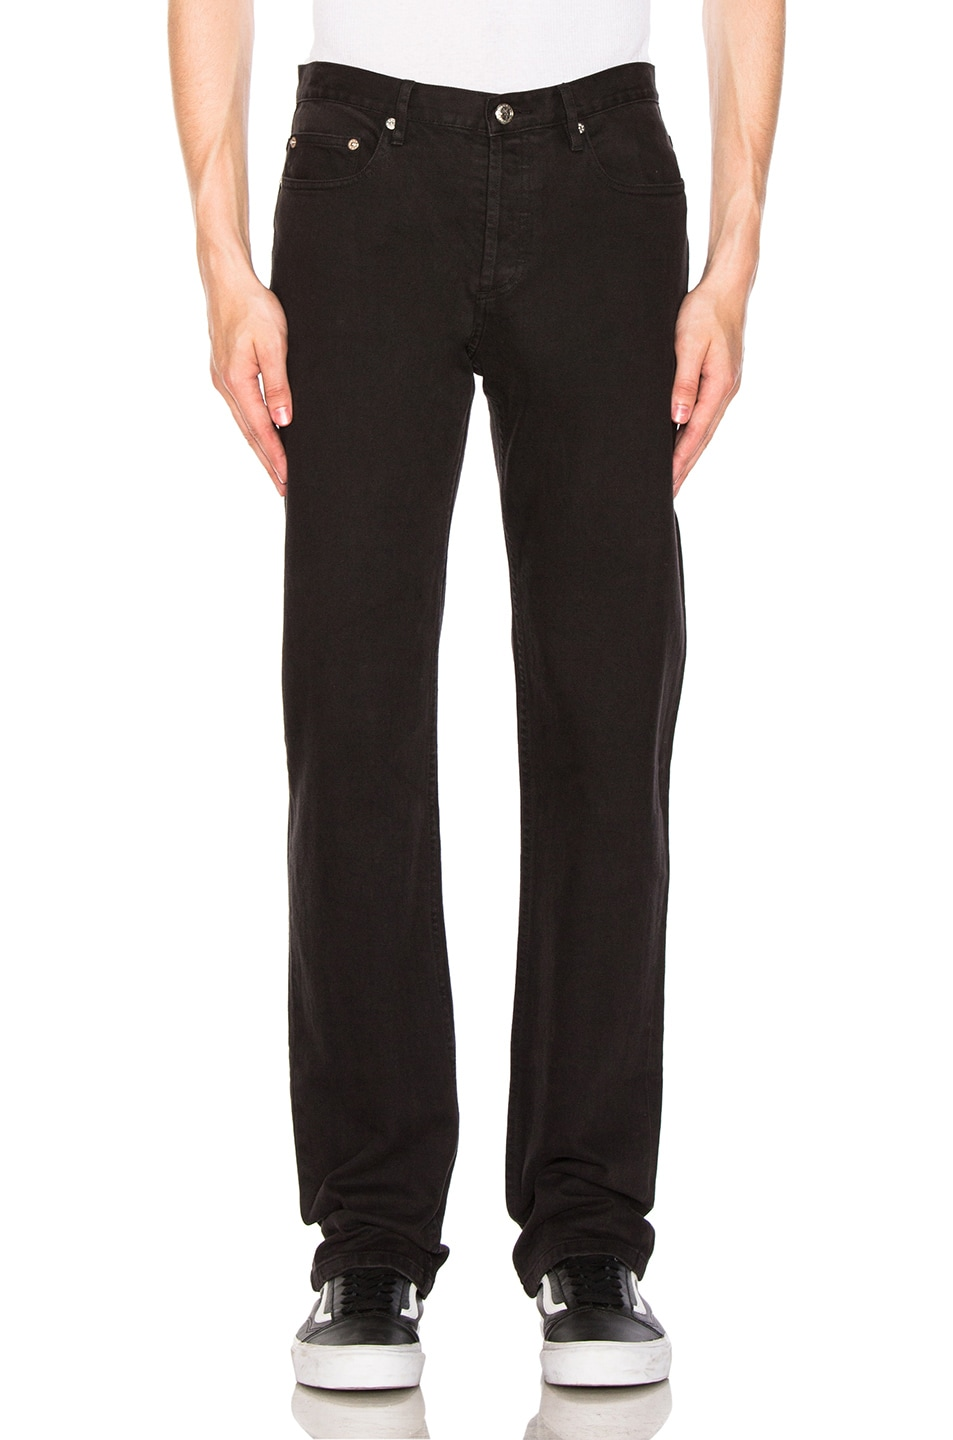 PETIT STANDARD SLIM FIT JEANS IN NOIR